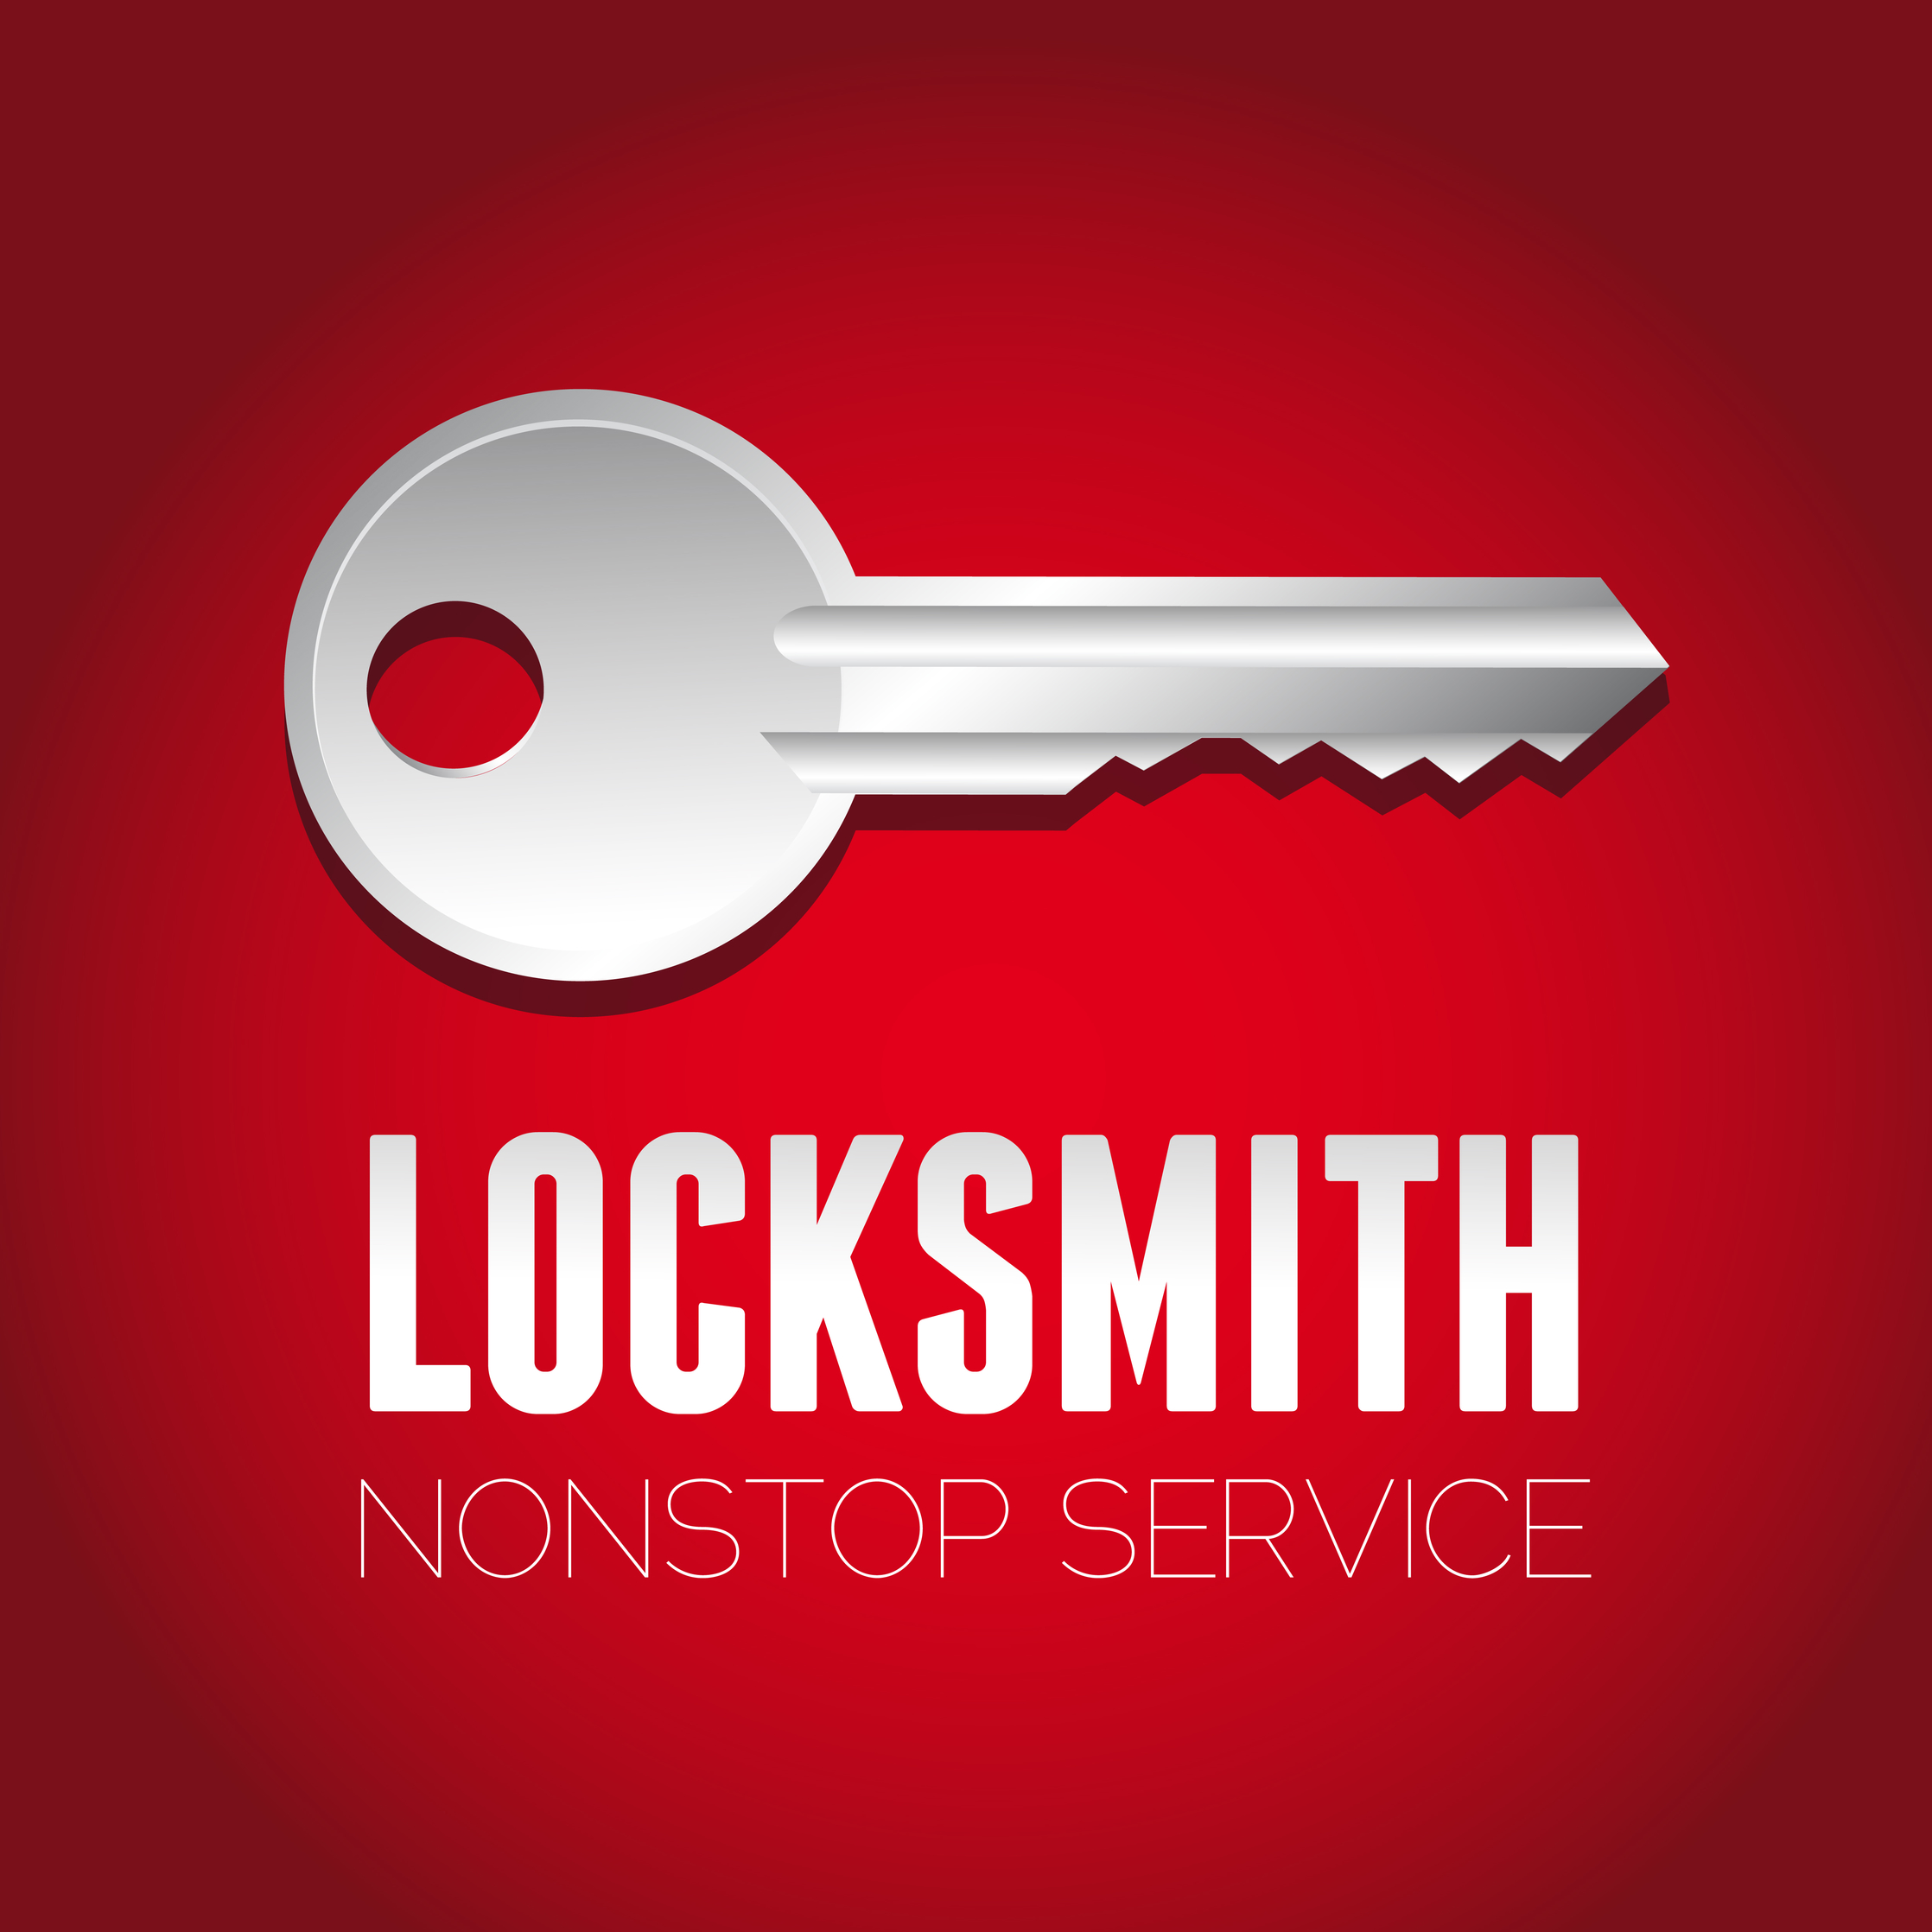 Local Locksmiths Customer Service